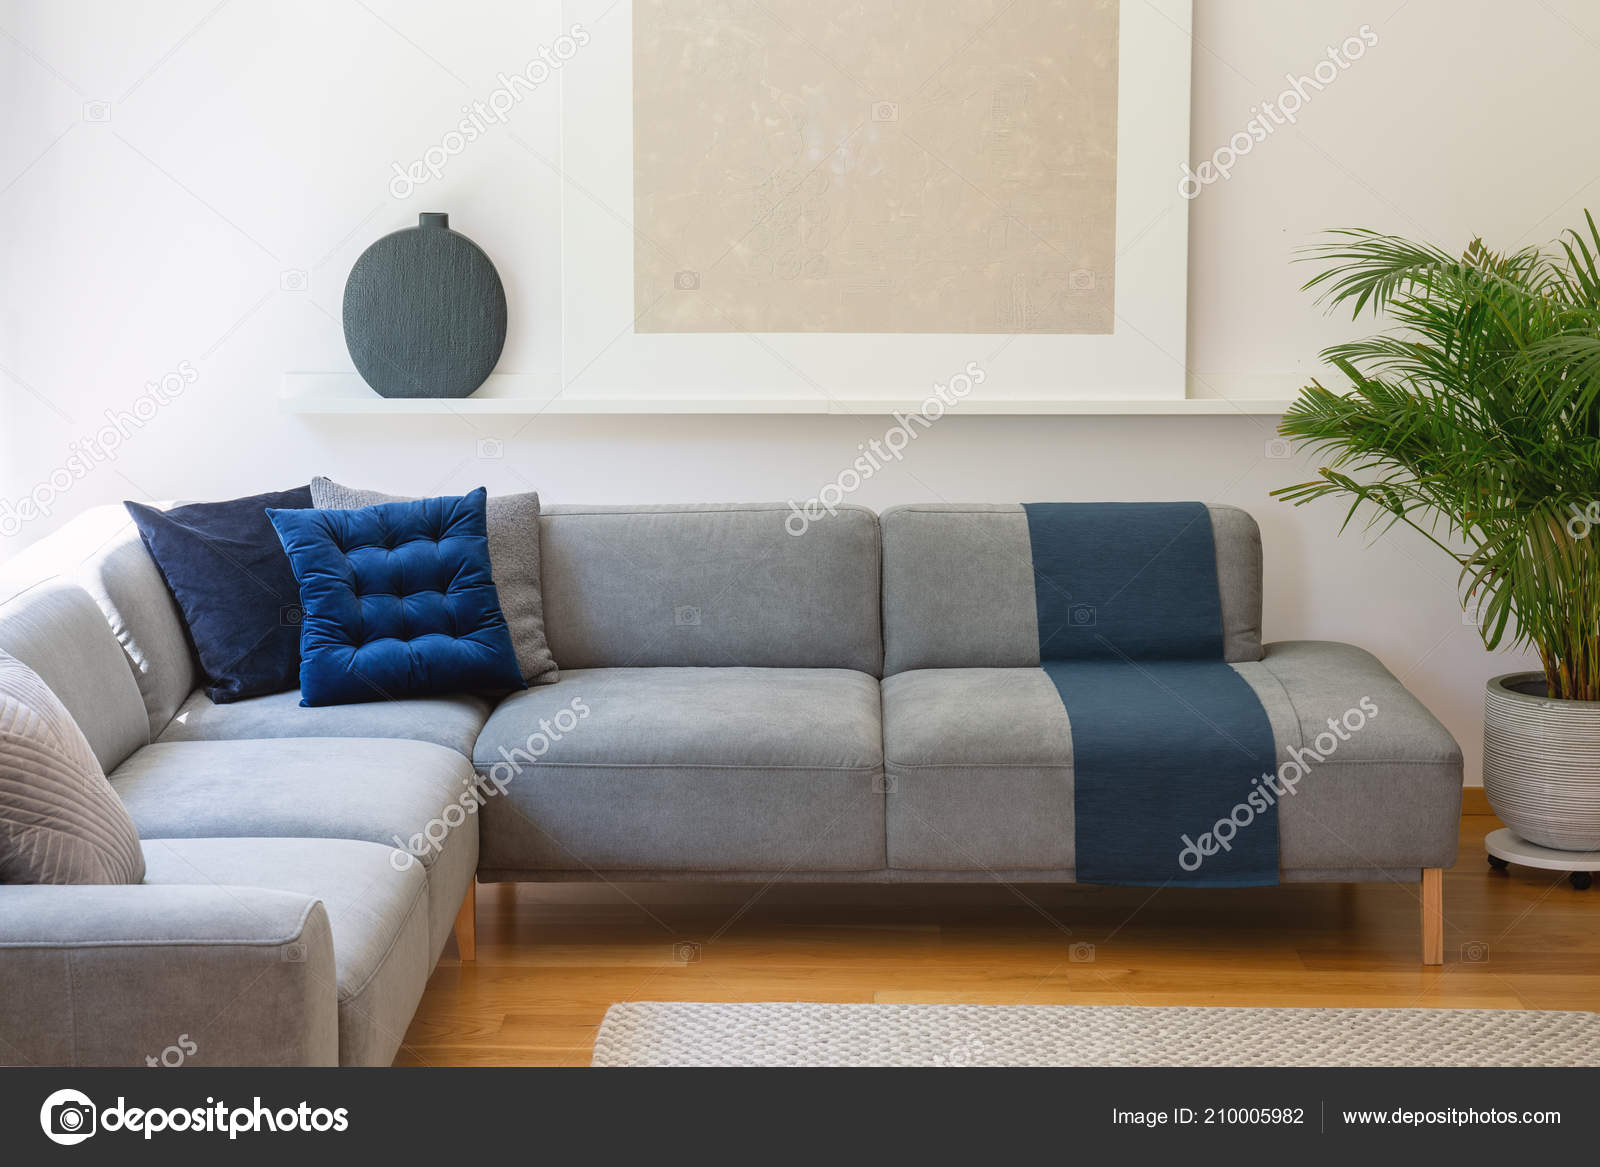 Slaapbank Lounge Grijs.Blue Pillows Grey Corner Couch Living Room Interior Plant Silver